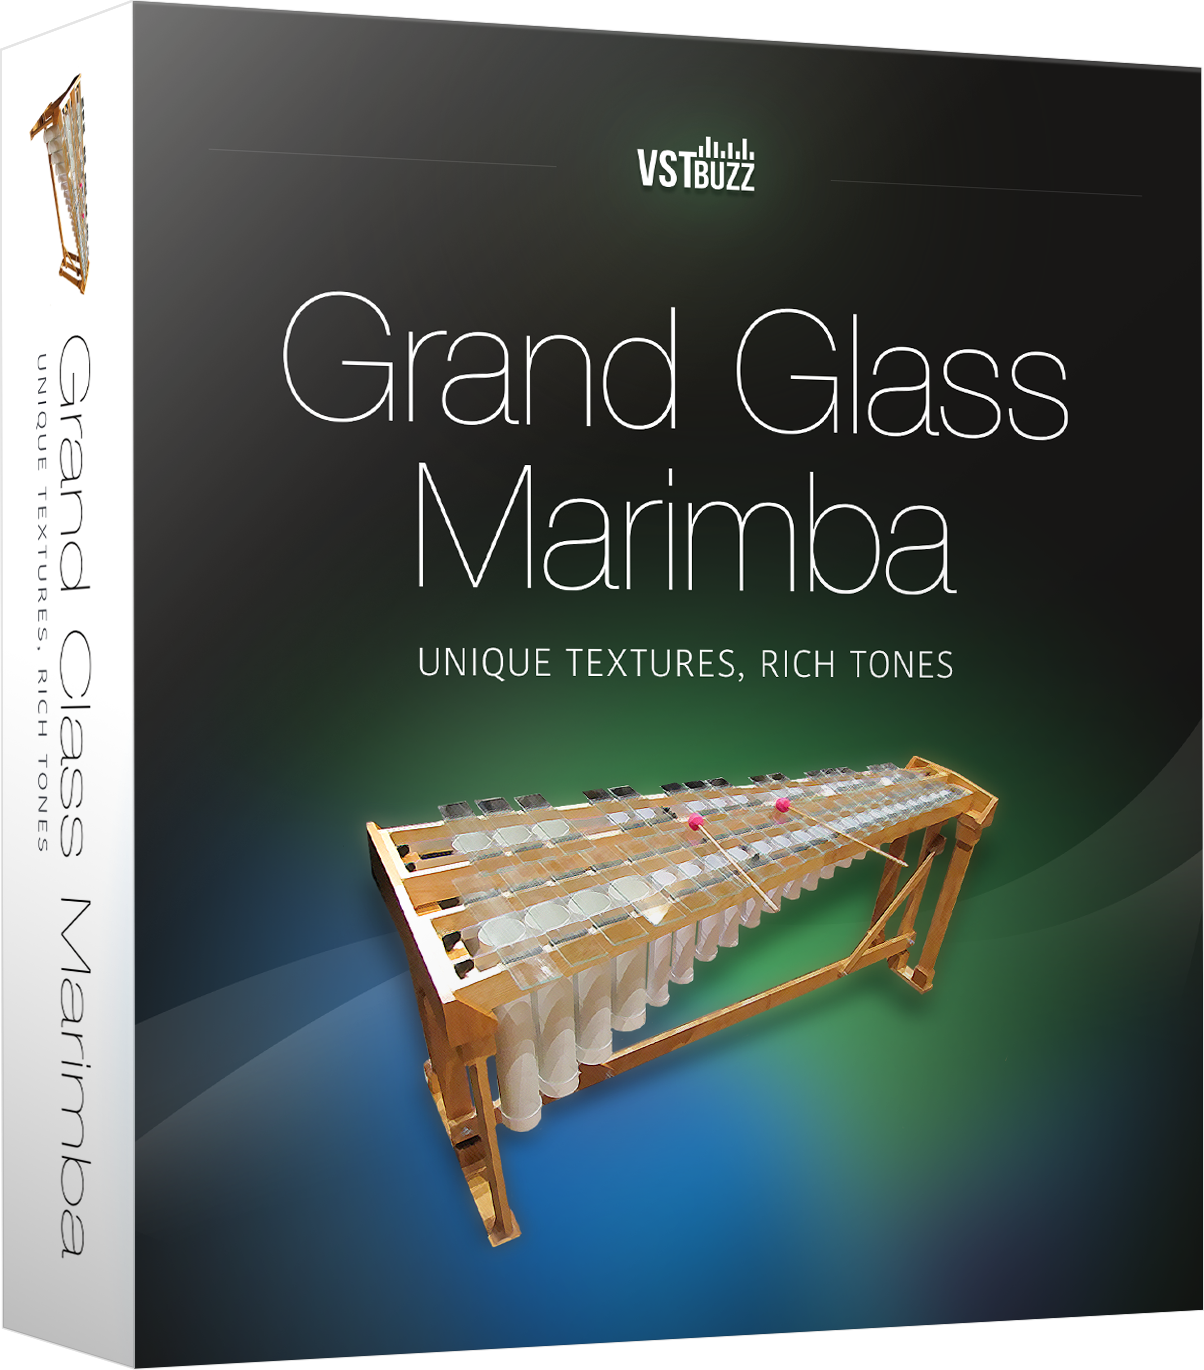 The Grand Glass Marimba